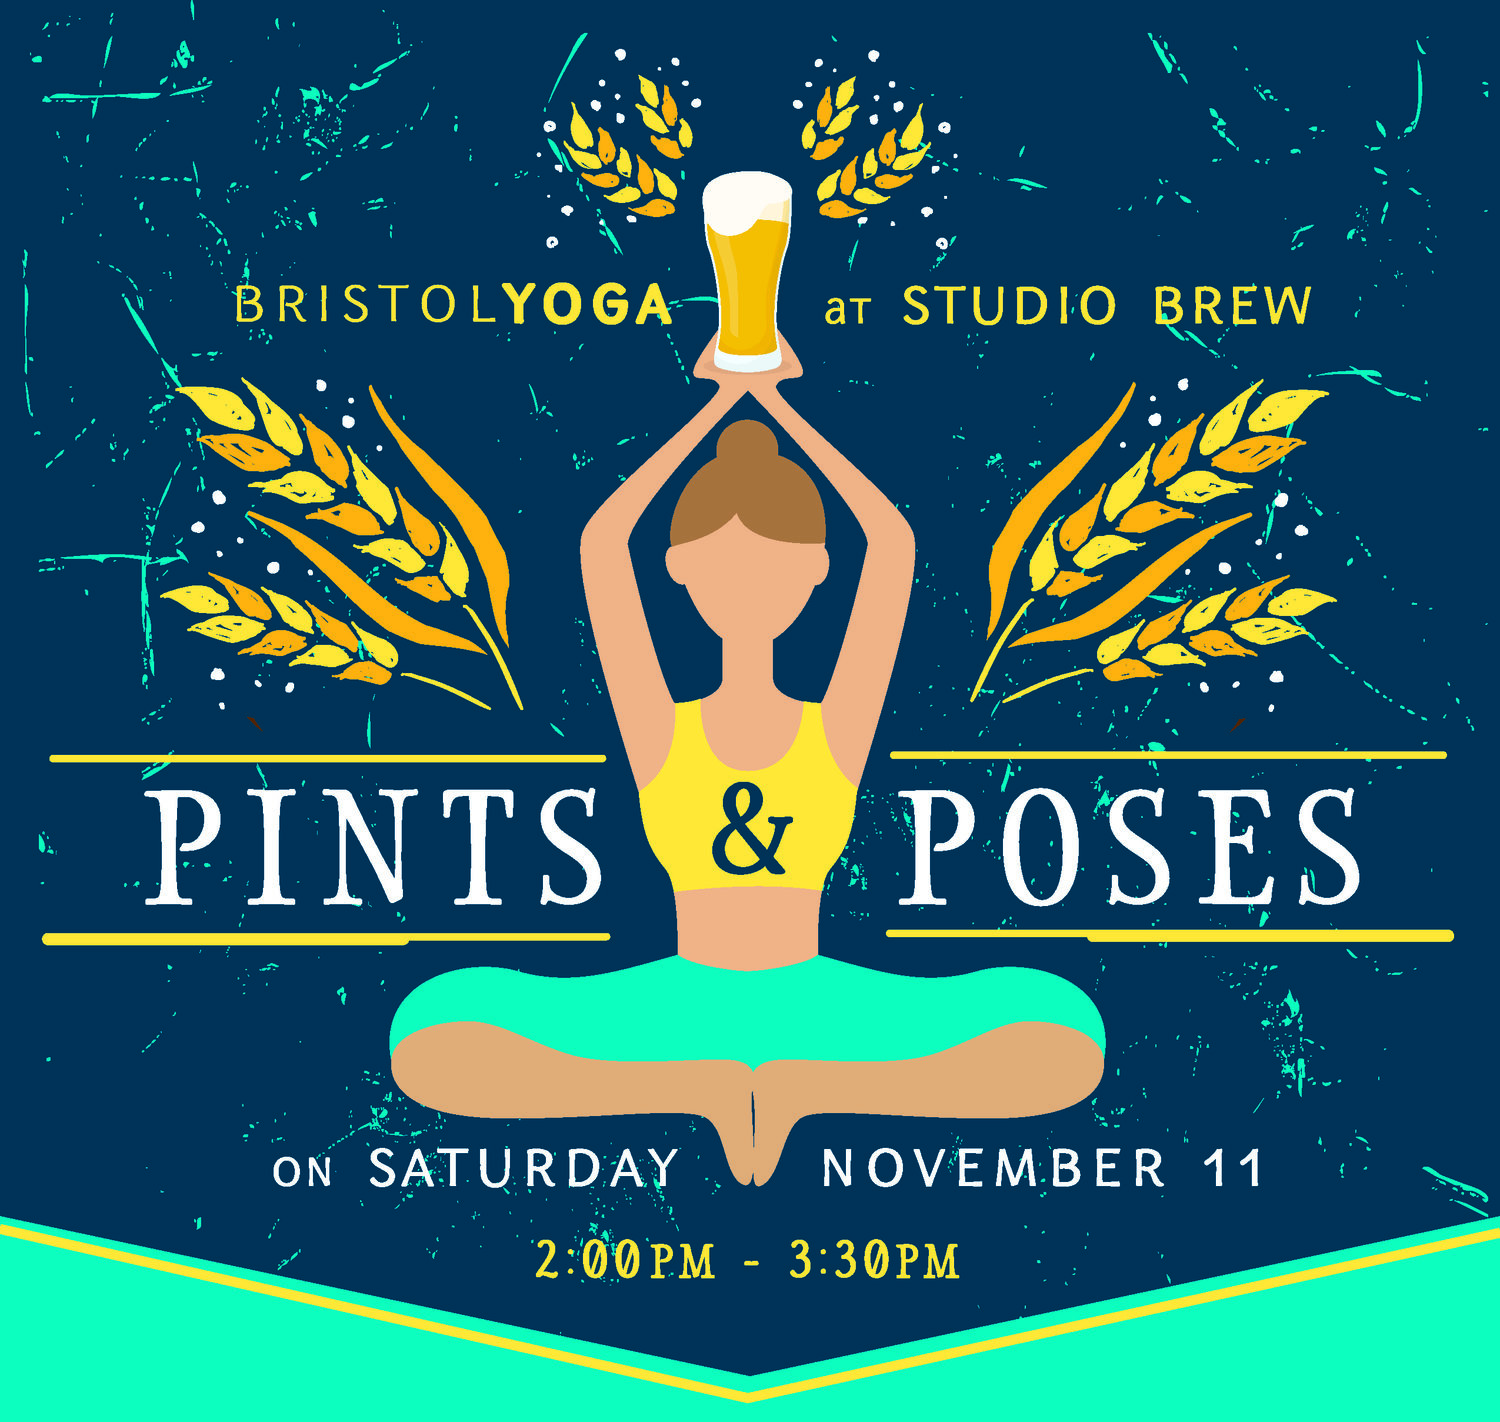 Pintsposes Bristolyoga At Studio Brew Your Destination For All